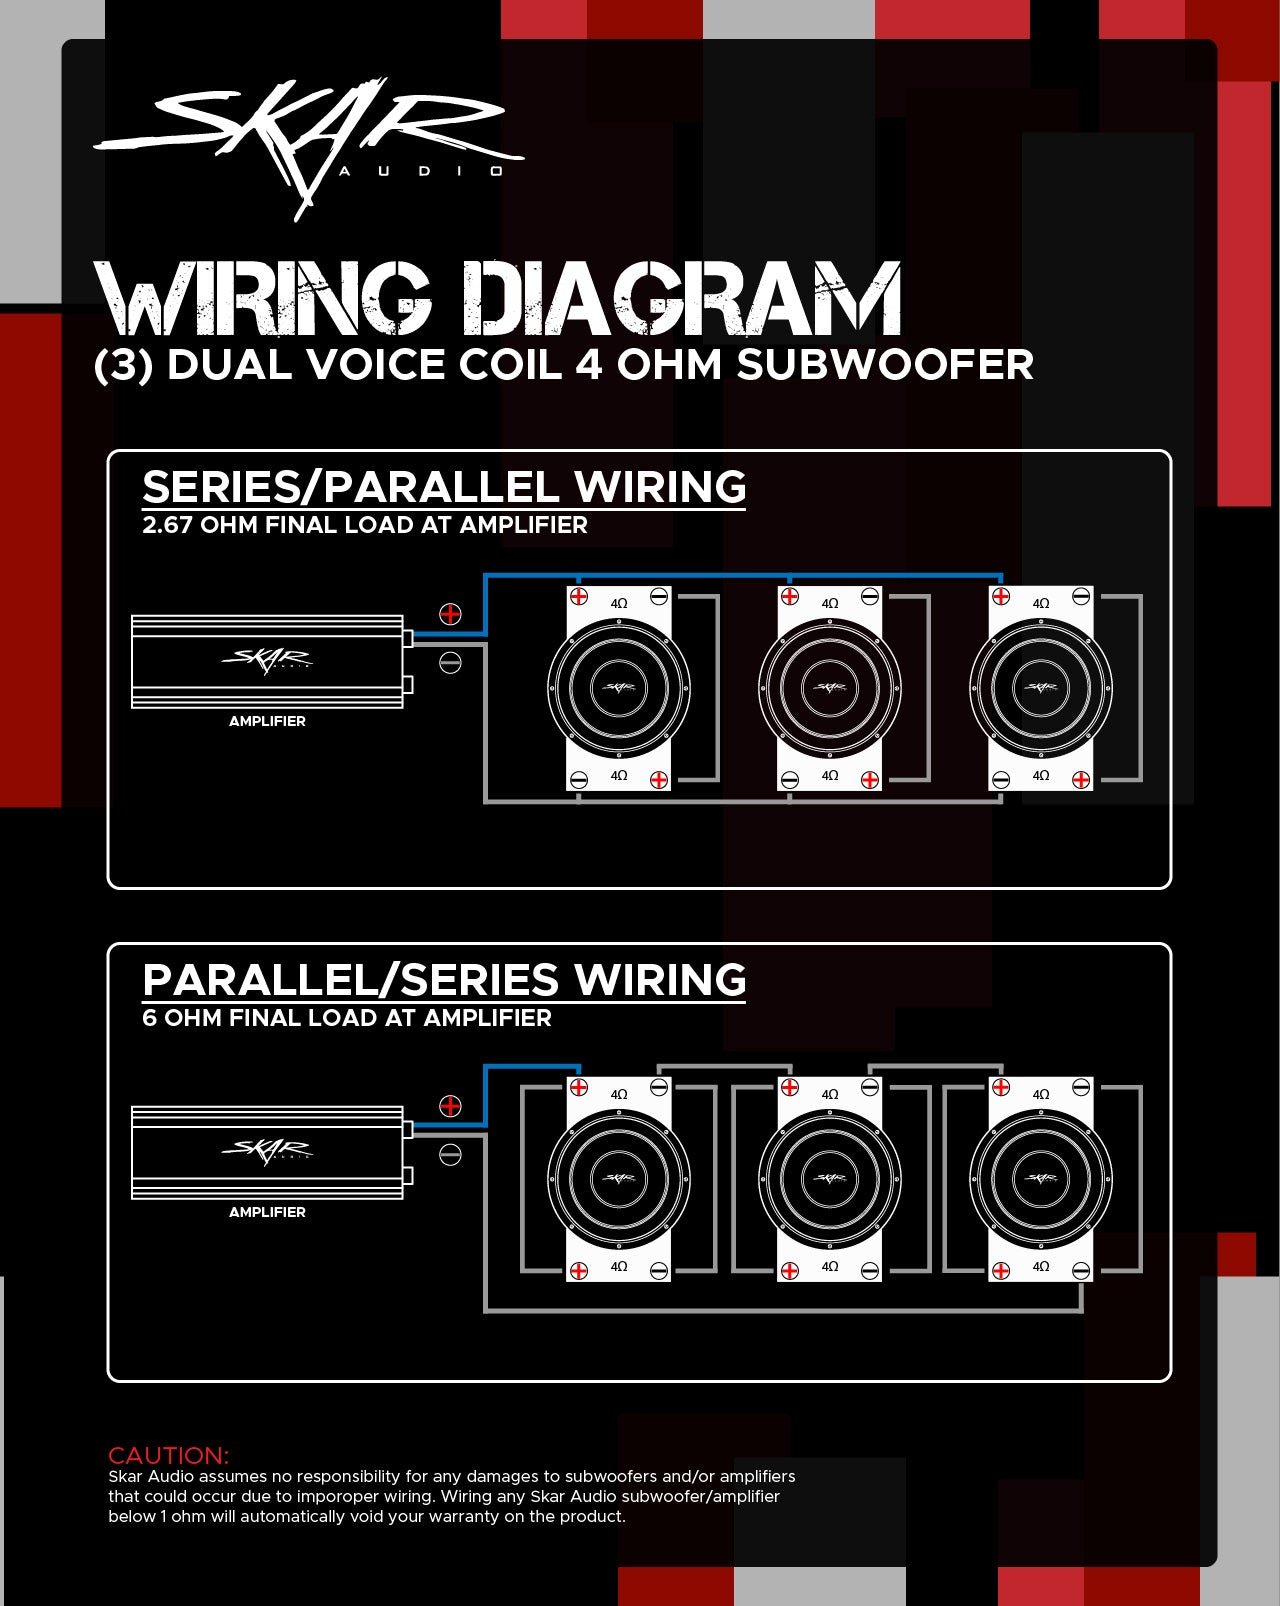 Dual Voice Coil Subwoofer Wiring Guides - Skar Audio Knowledge Base & Help  Desk | With Dual 4 Ohm Mono Amp Wiring Diagram |  | Skar Audio Knowledge Base & Help Desk